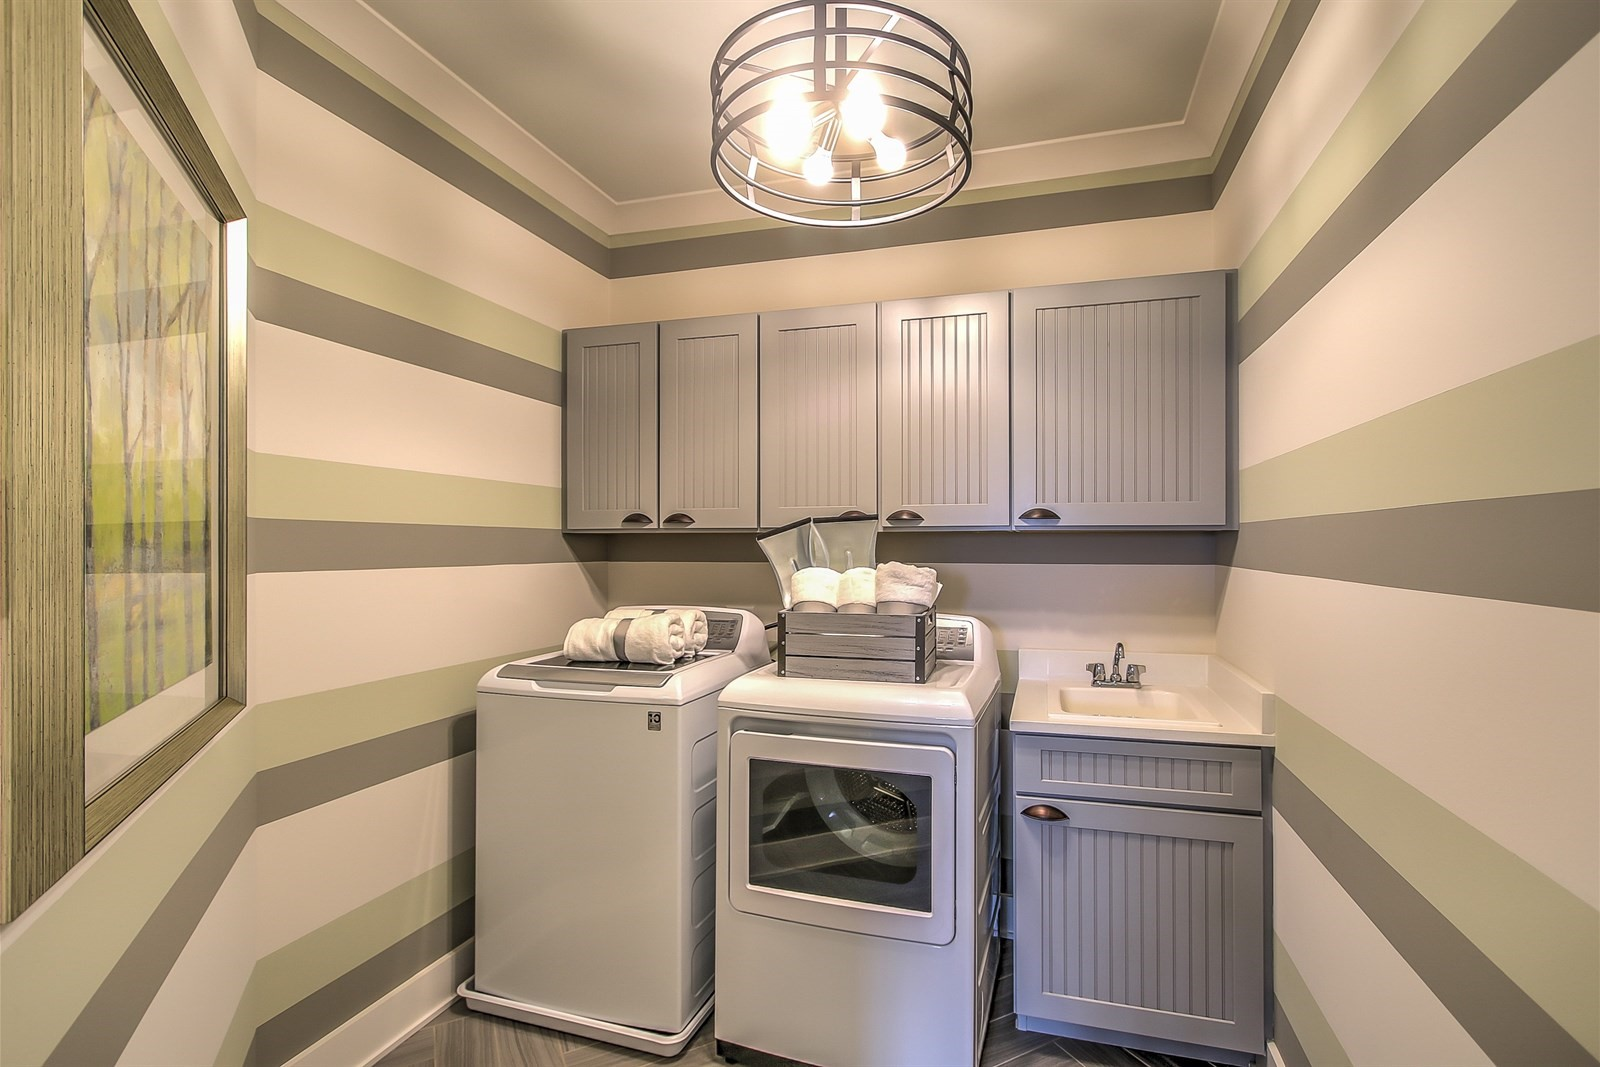 Brentwood Laundry Room